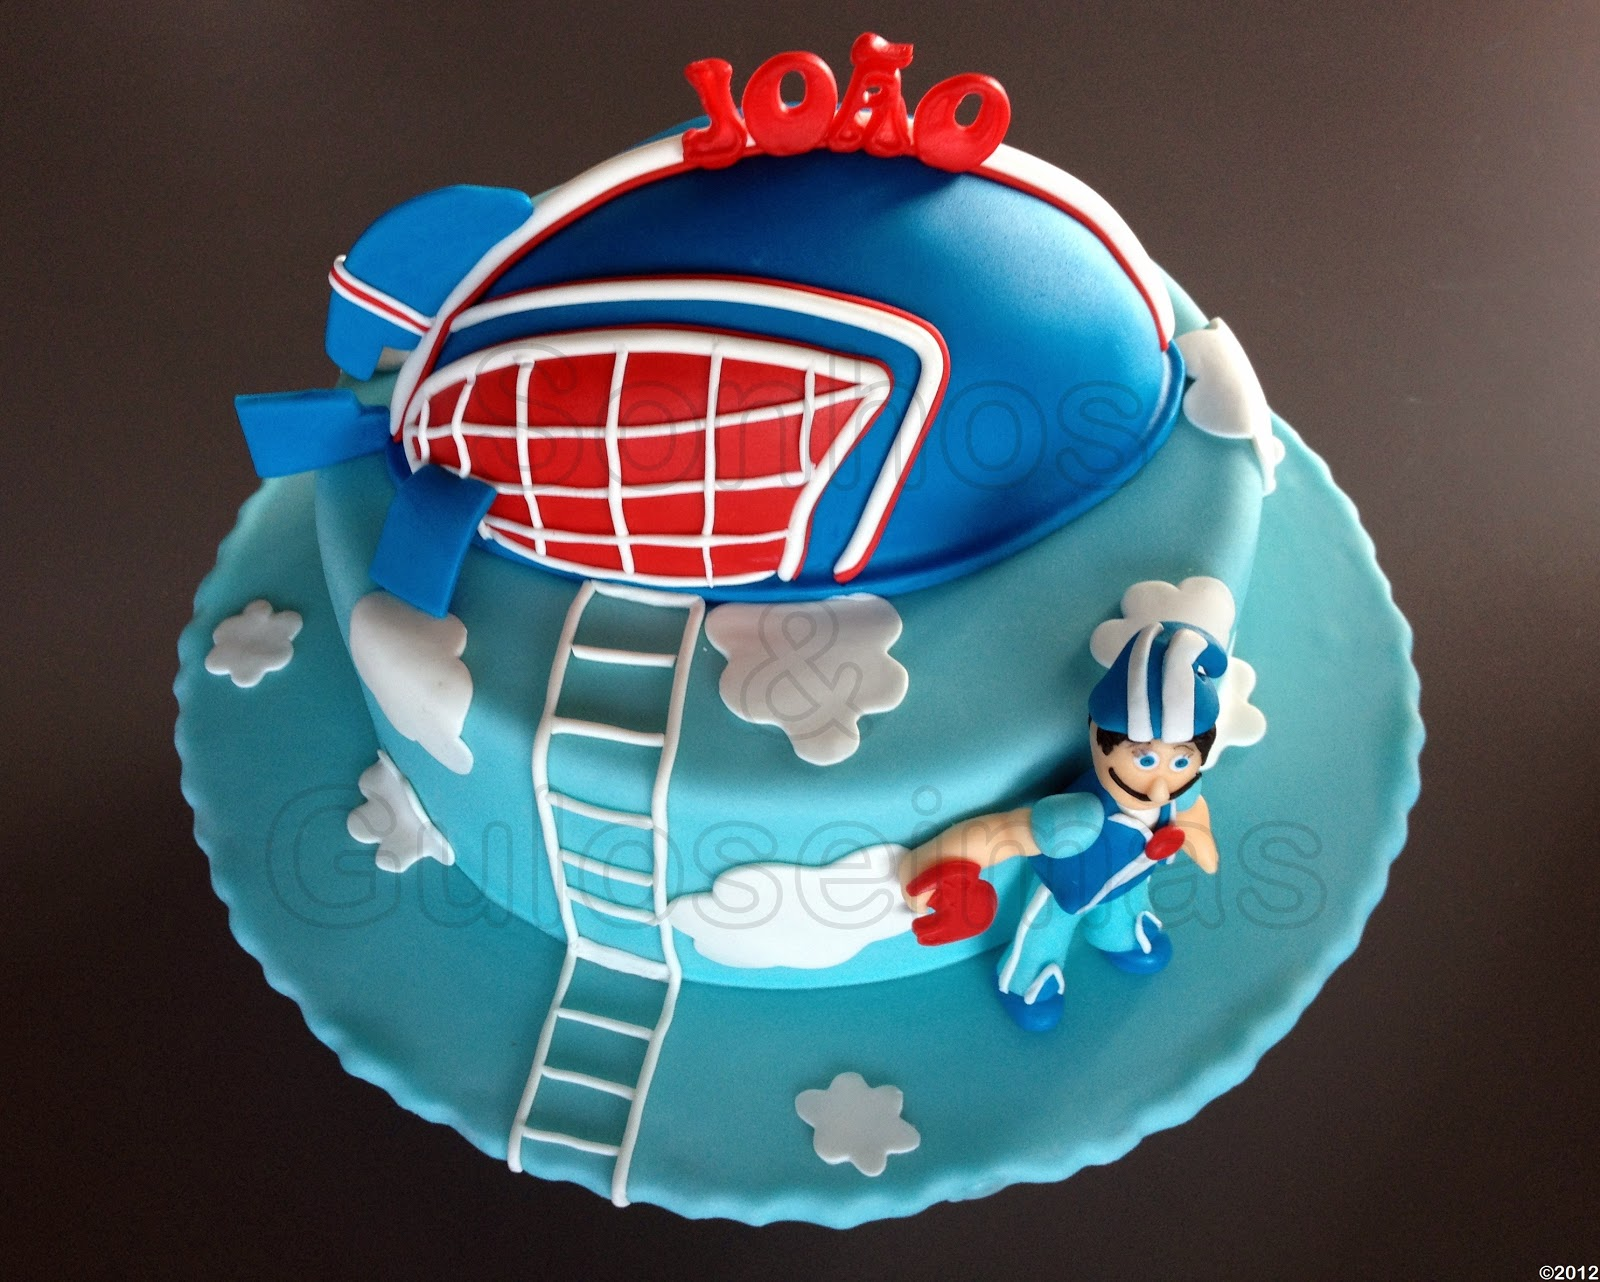 Pin Sportacus Airship From Lazytown Cake Decoration ...